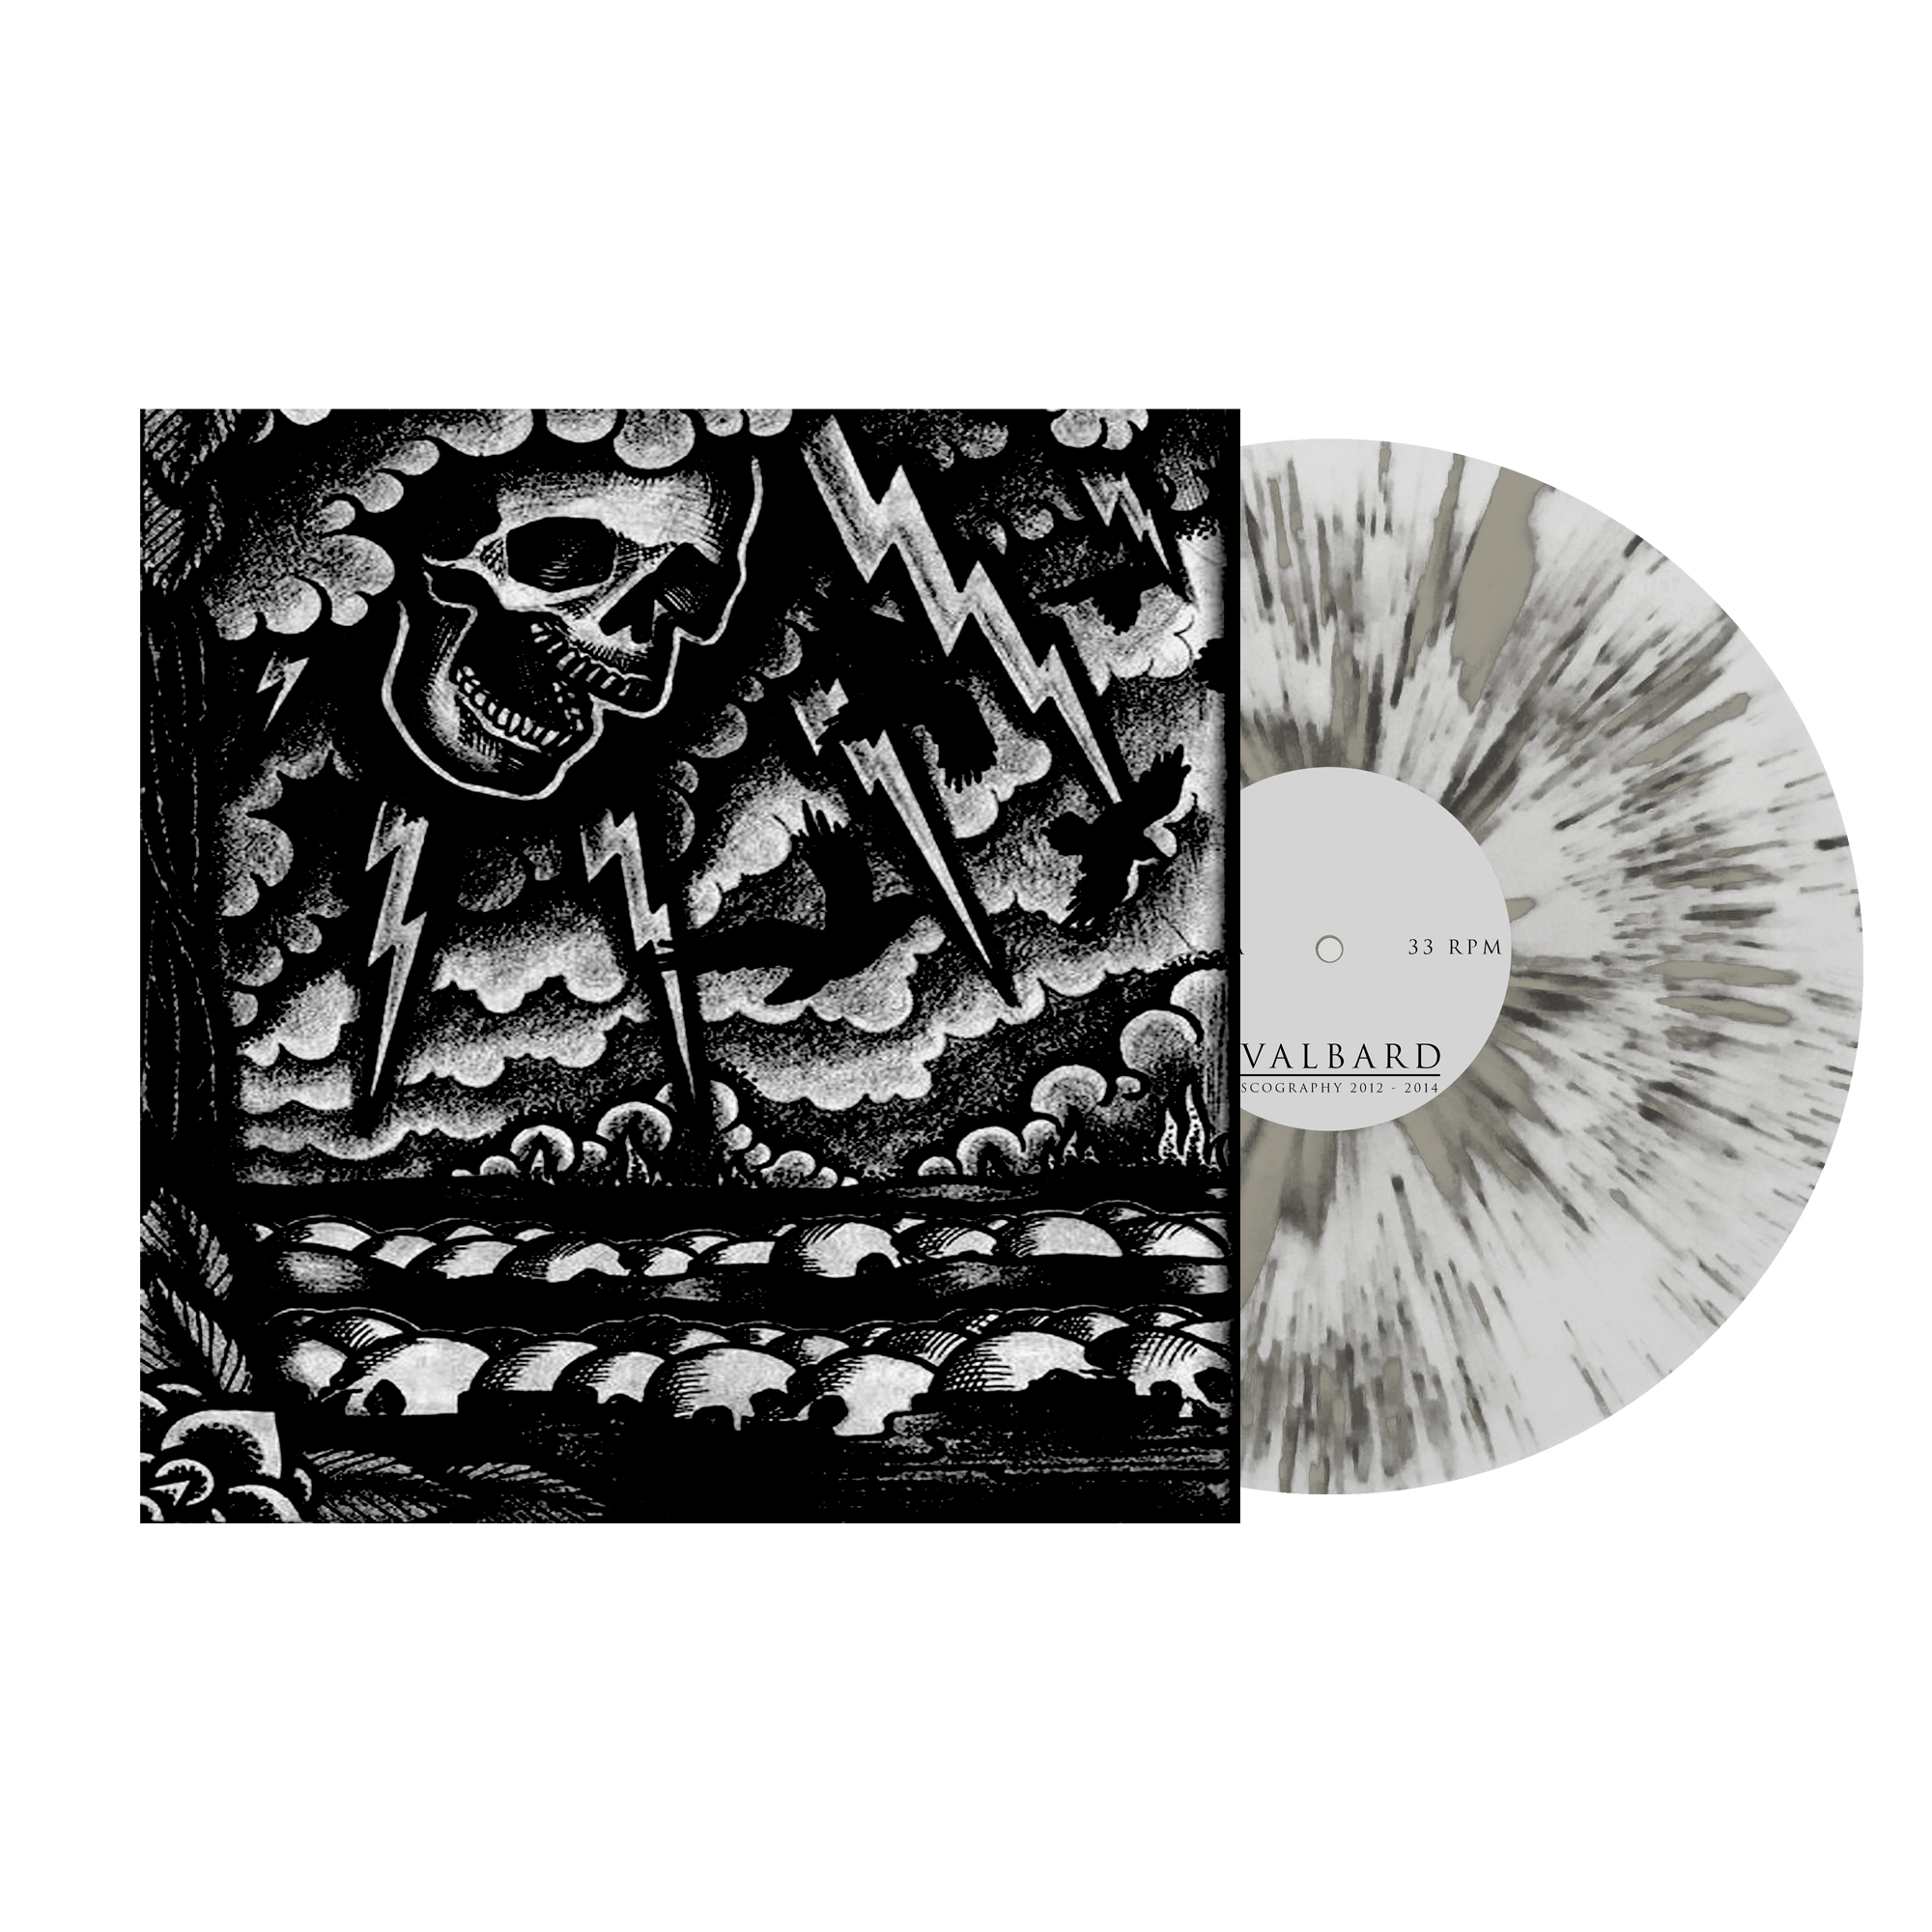 Svalbard - Discography 2012 - 2014 PRE-ORDER